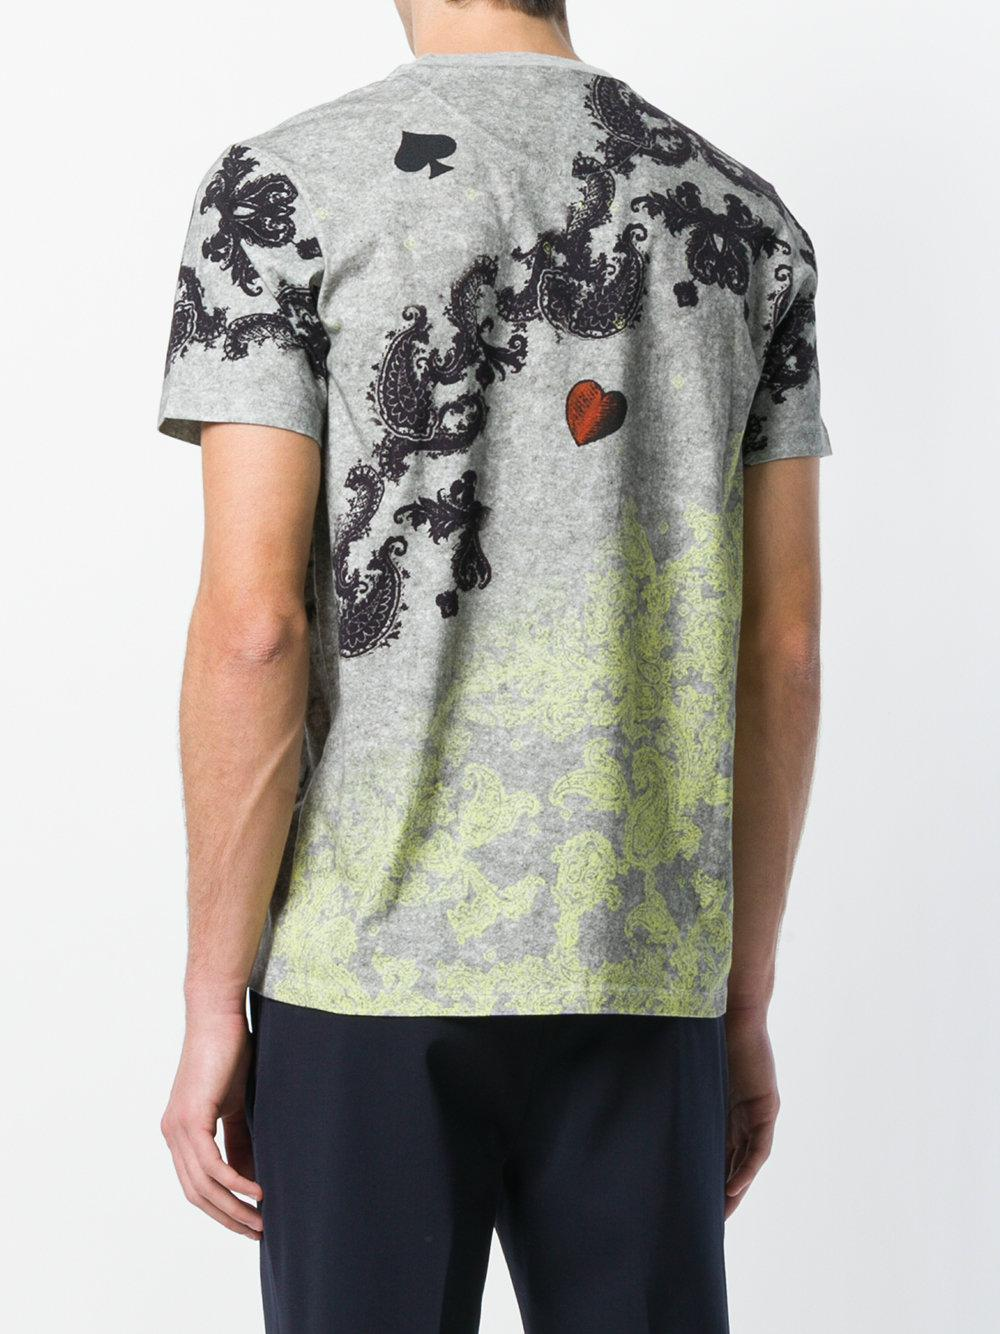 0a9b1dcf7f30 Lyst - Etro Printed Crew Neck T-shirt in Gray for Men